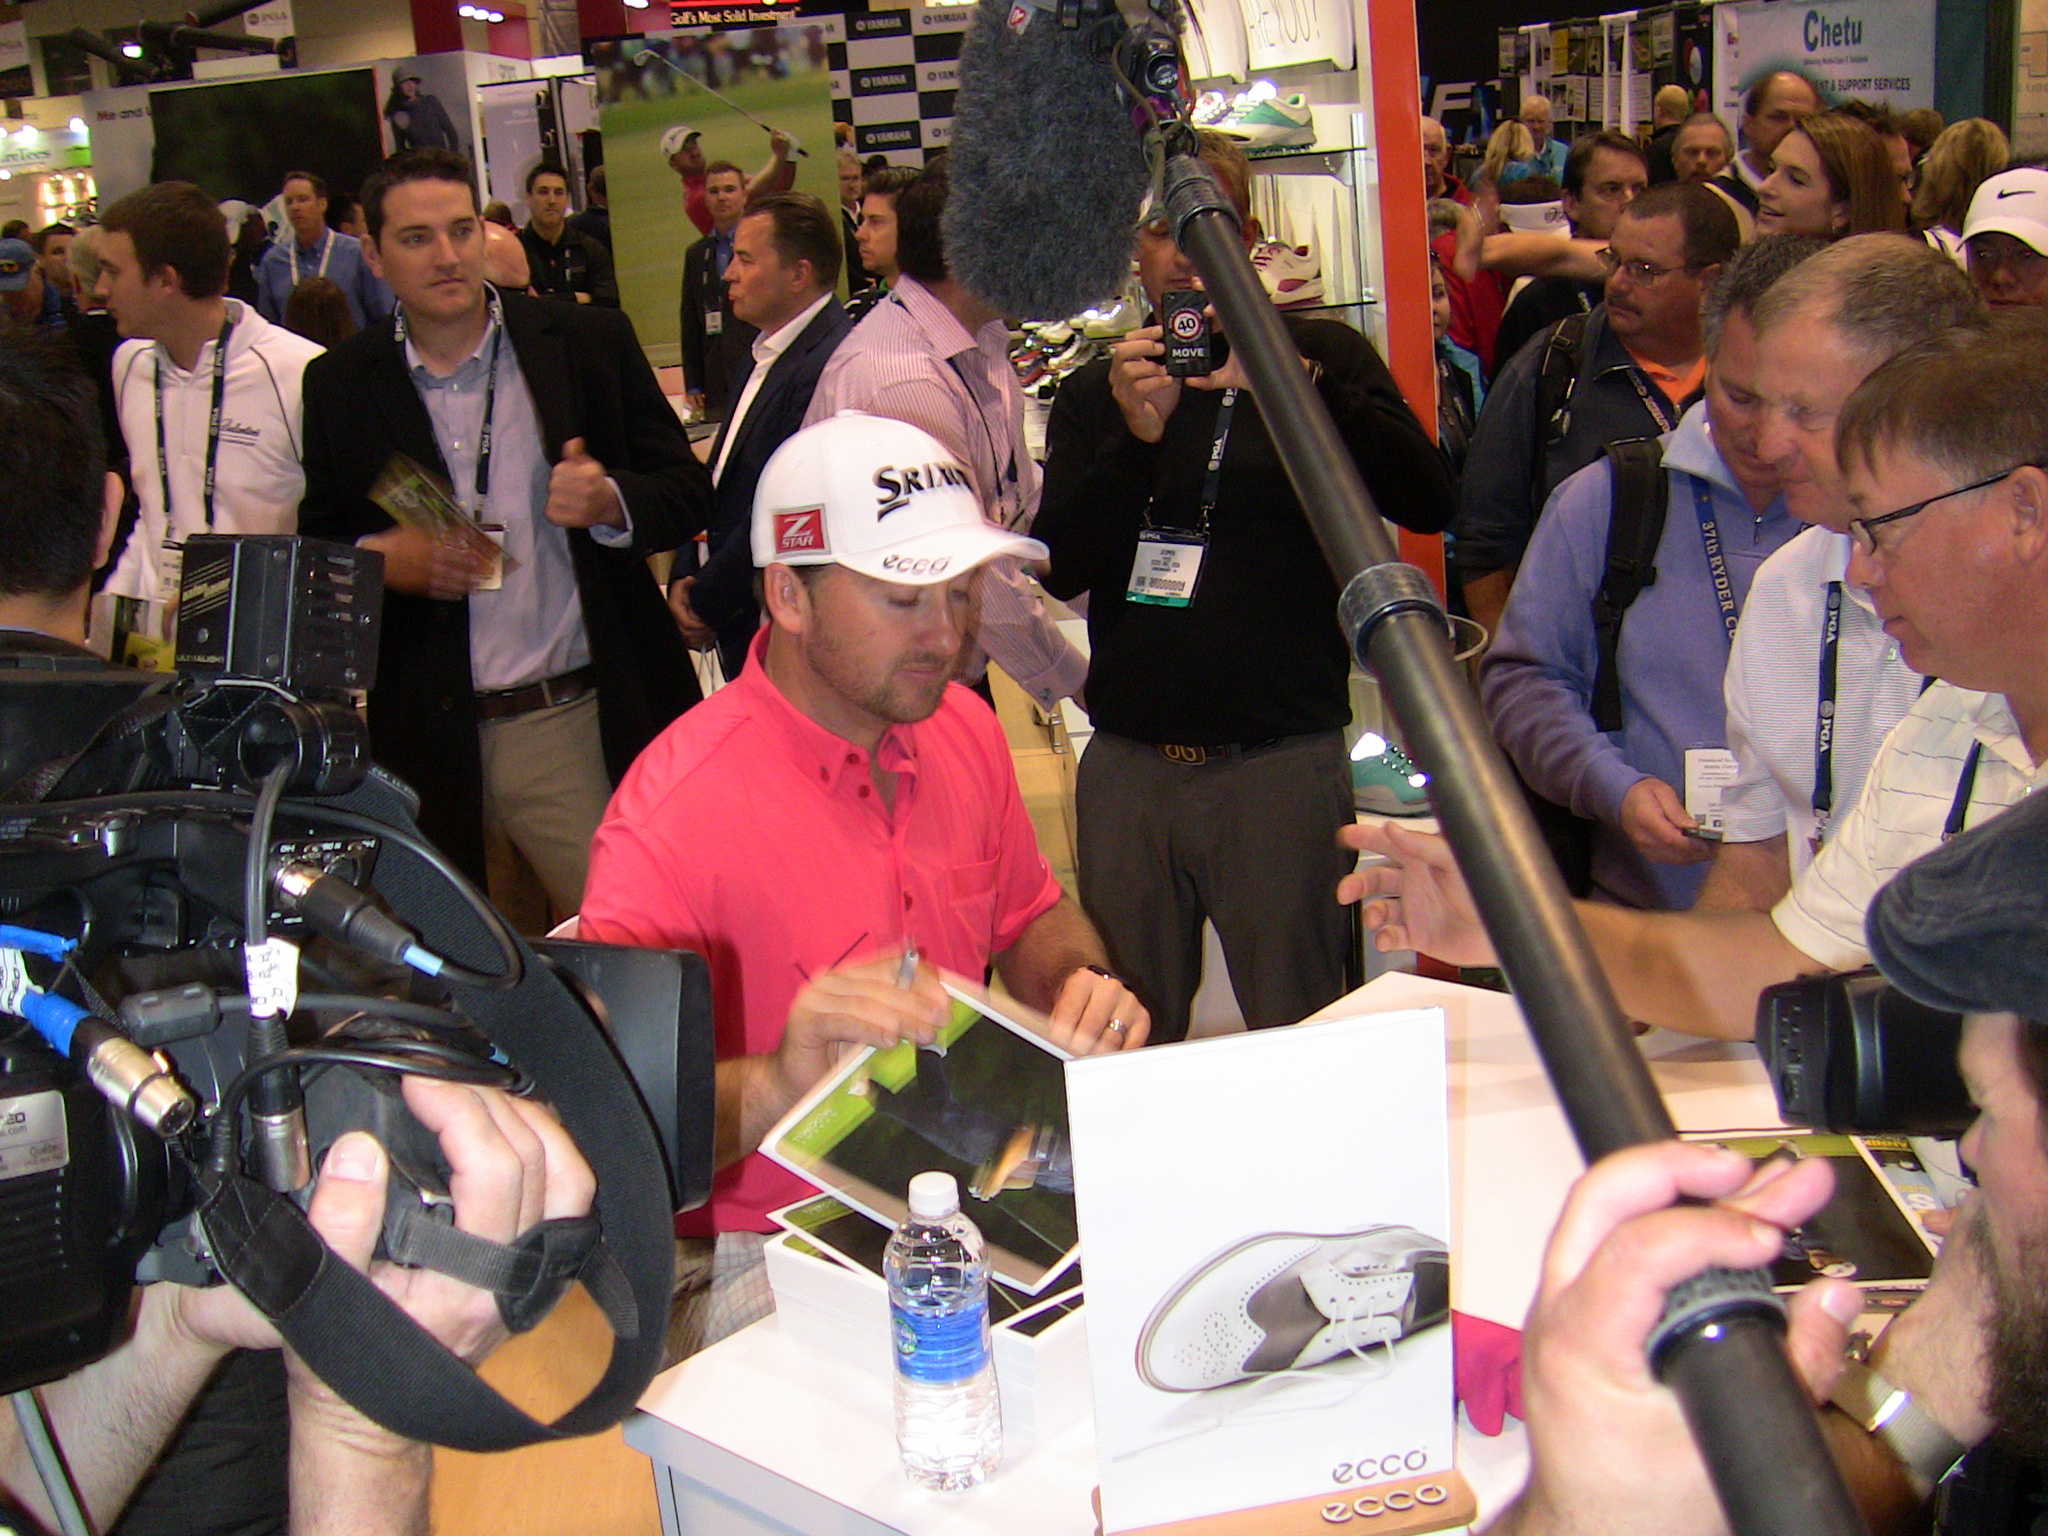 PGA Tour professional Graeme McDowell was one of the many golf celebrities on hand for the first day of the 61st PGA Merchandise Show.